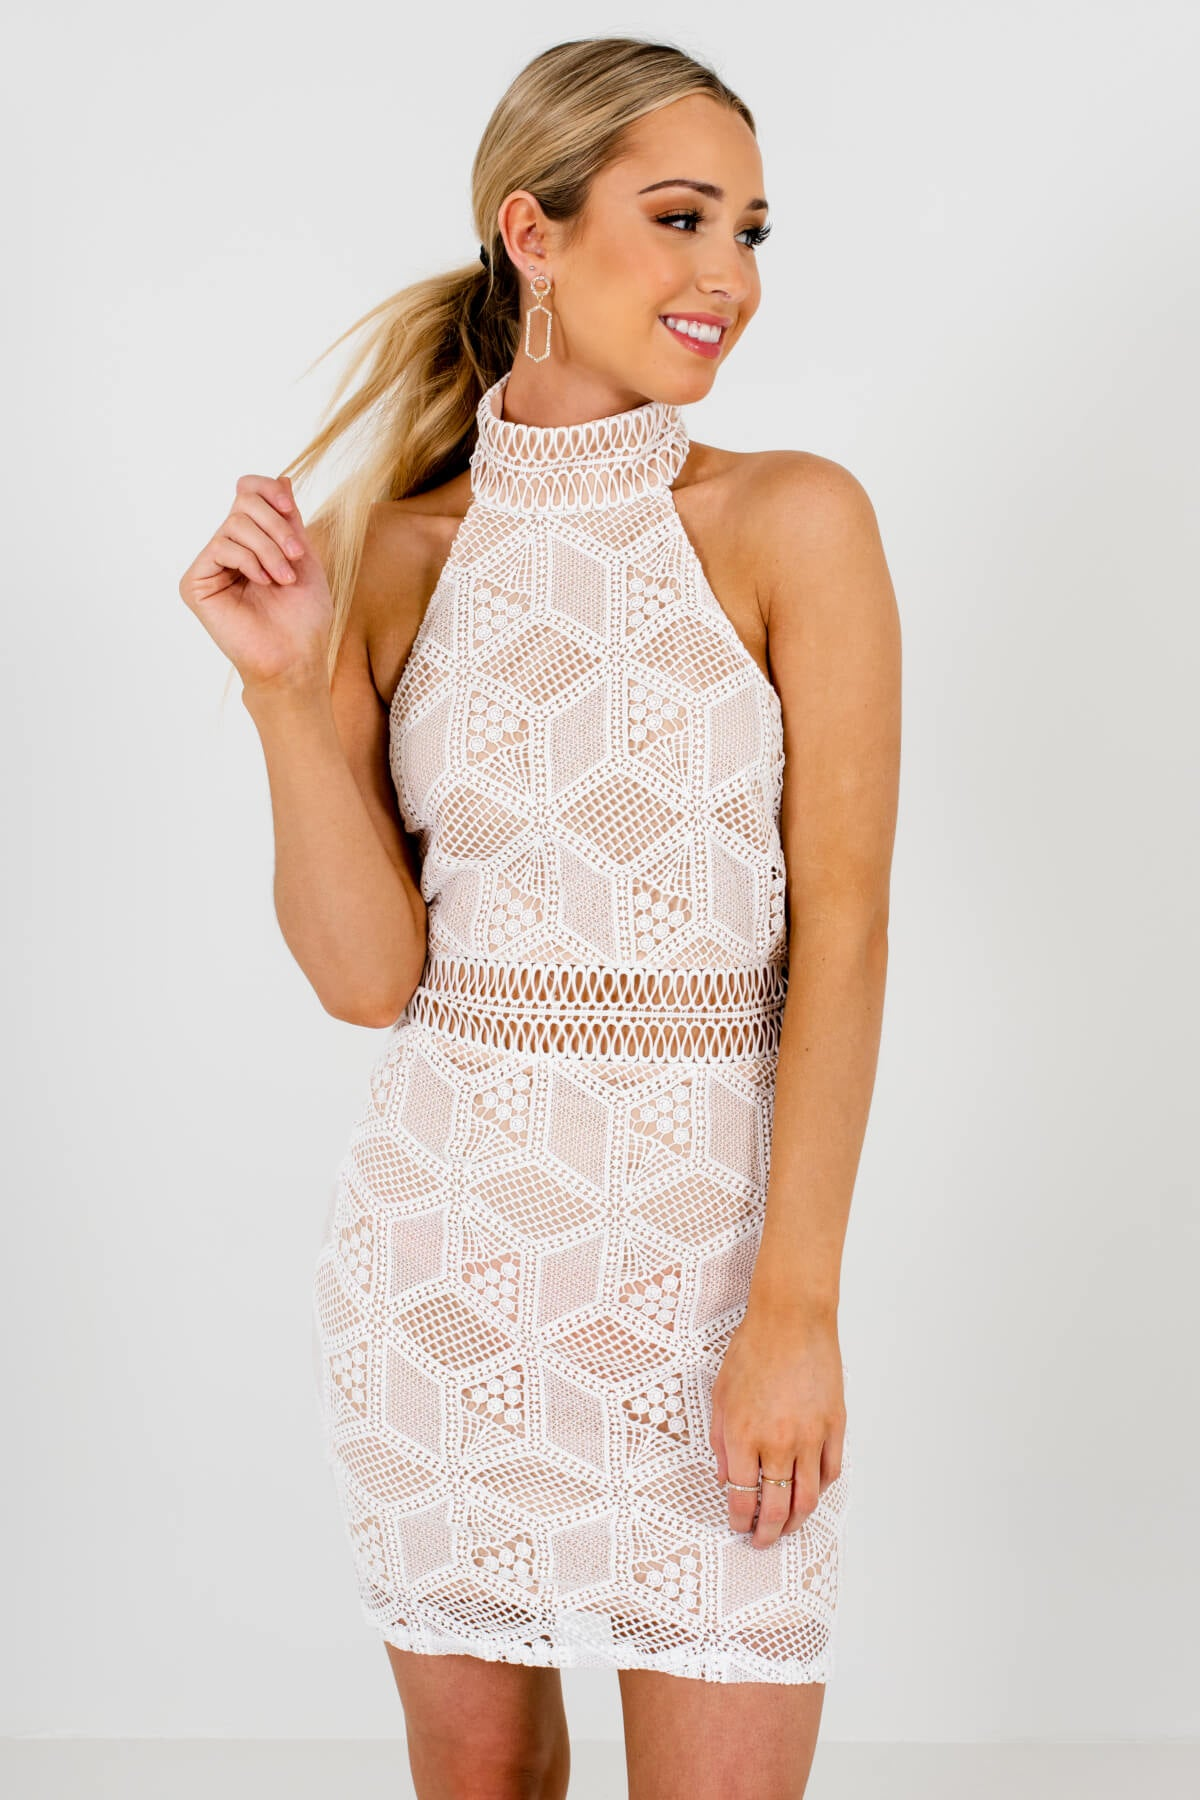 White Crochet Lace Overlay Boutique Mini Length Dresses for Women